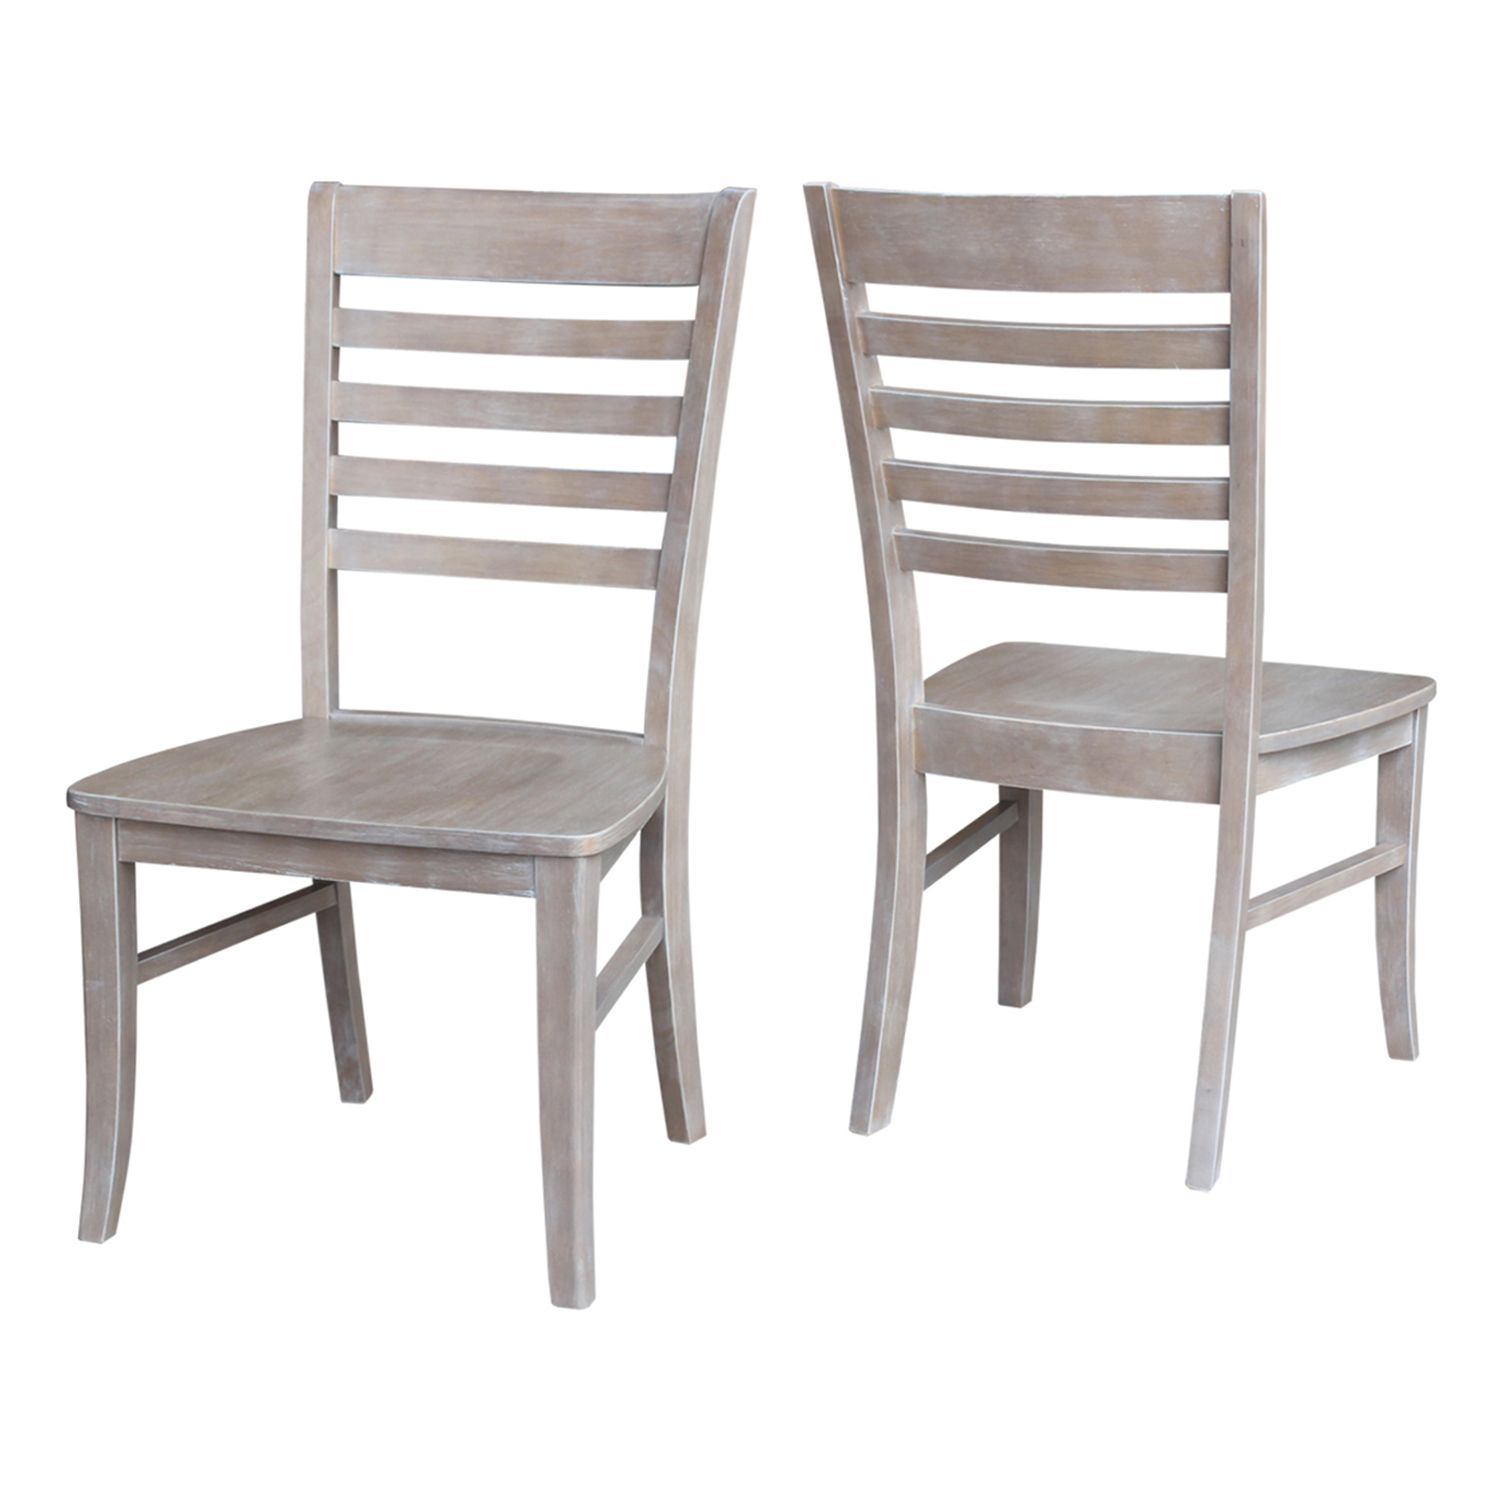 International Concepts Cosmo Ladderback Dining Chair 2 Piece Set